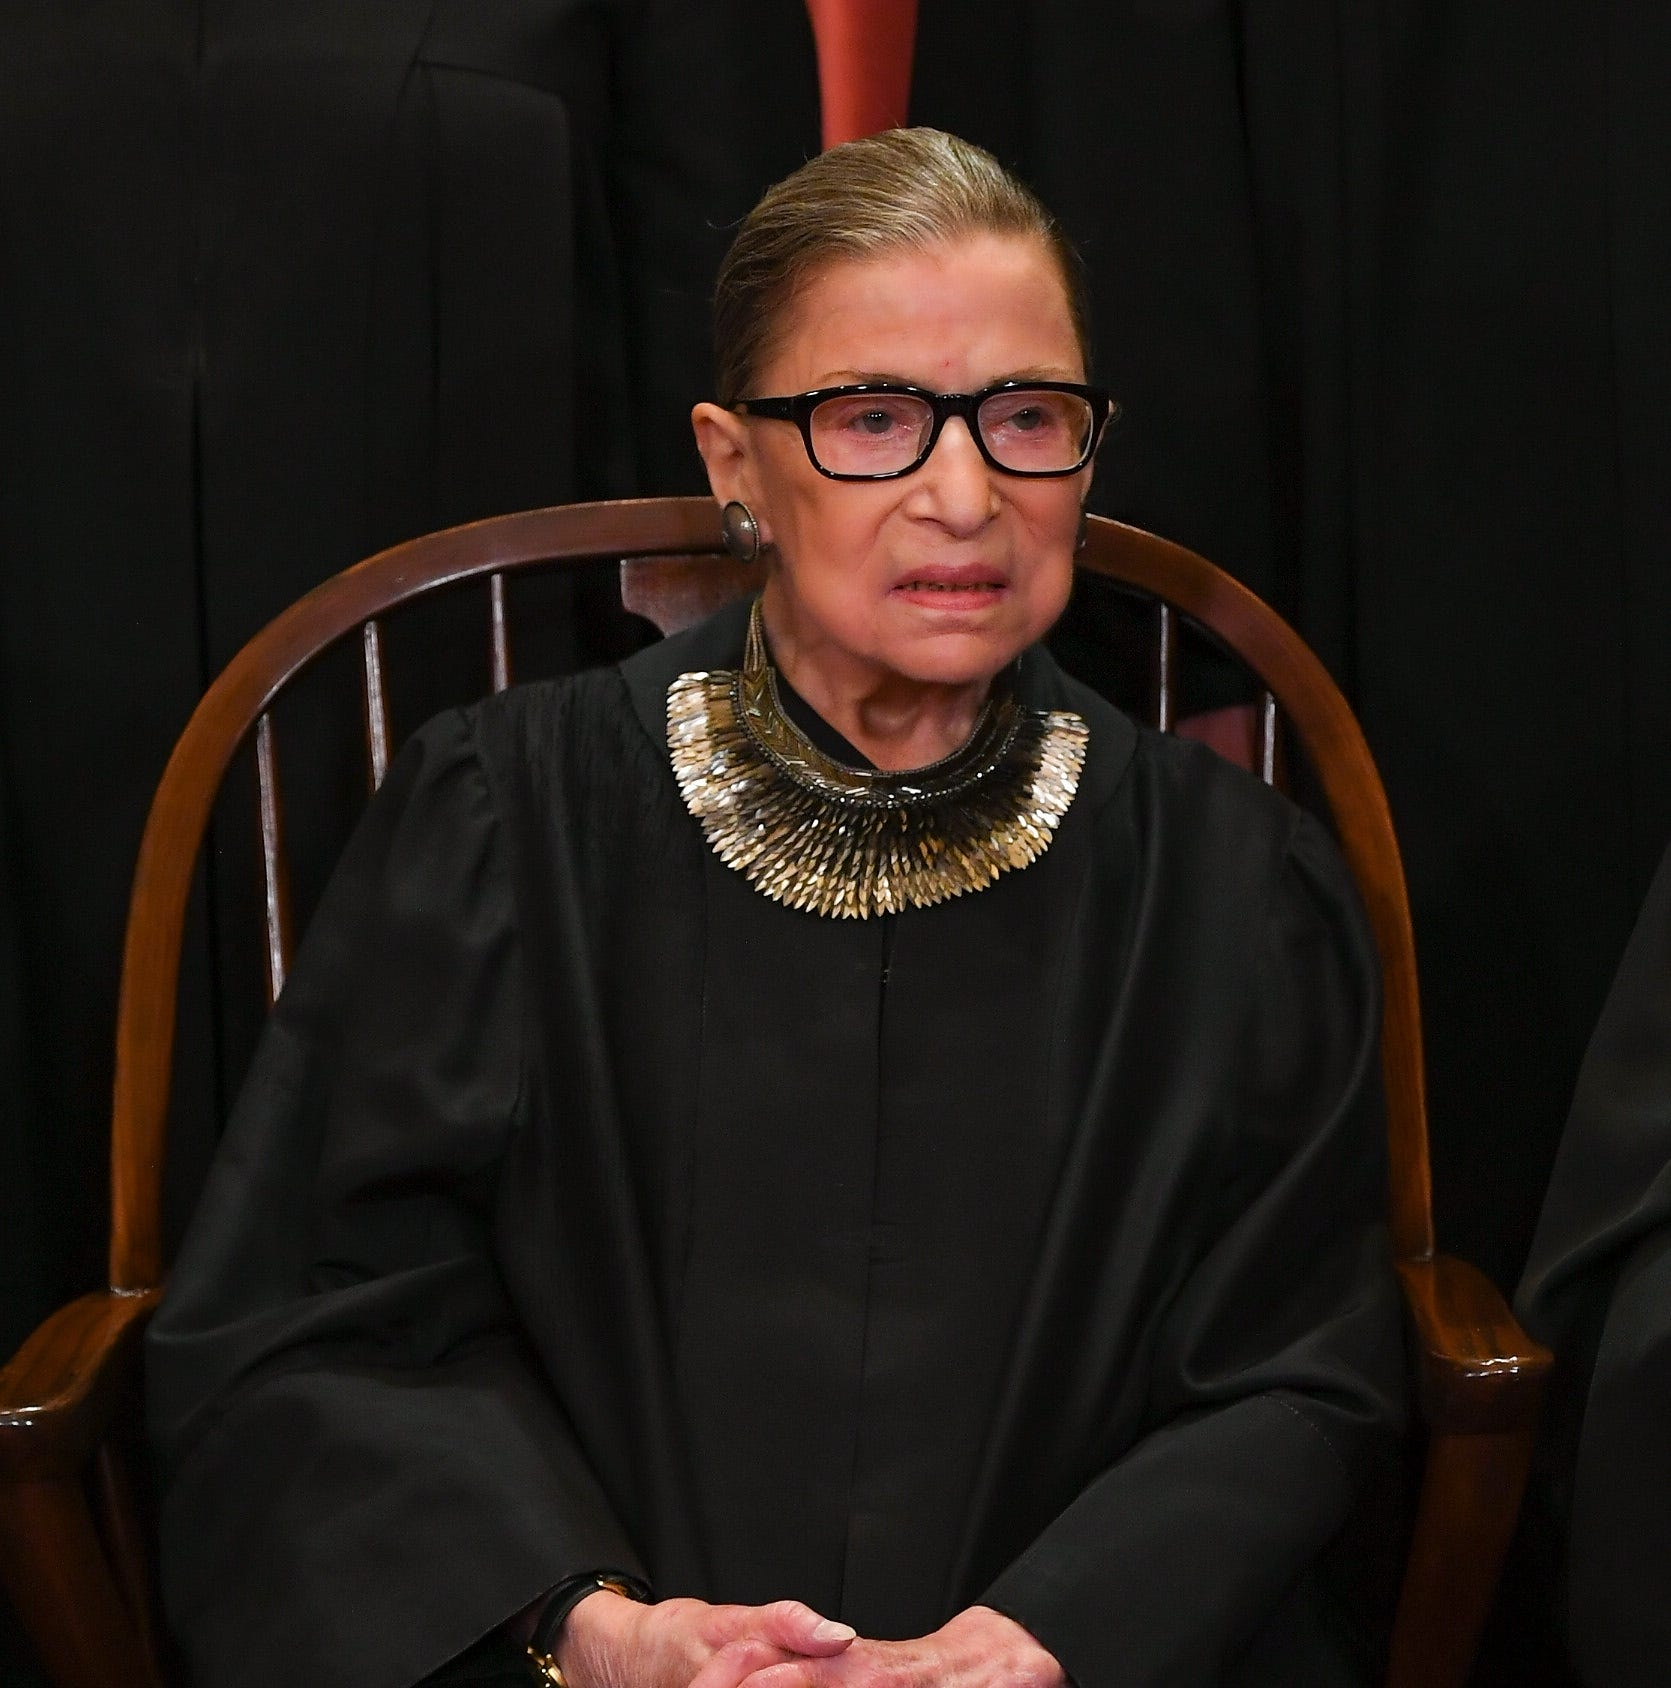 Justice Ruth Bader Ginsburg returns to Supreme Court bench two months after surgery for lung cancer